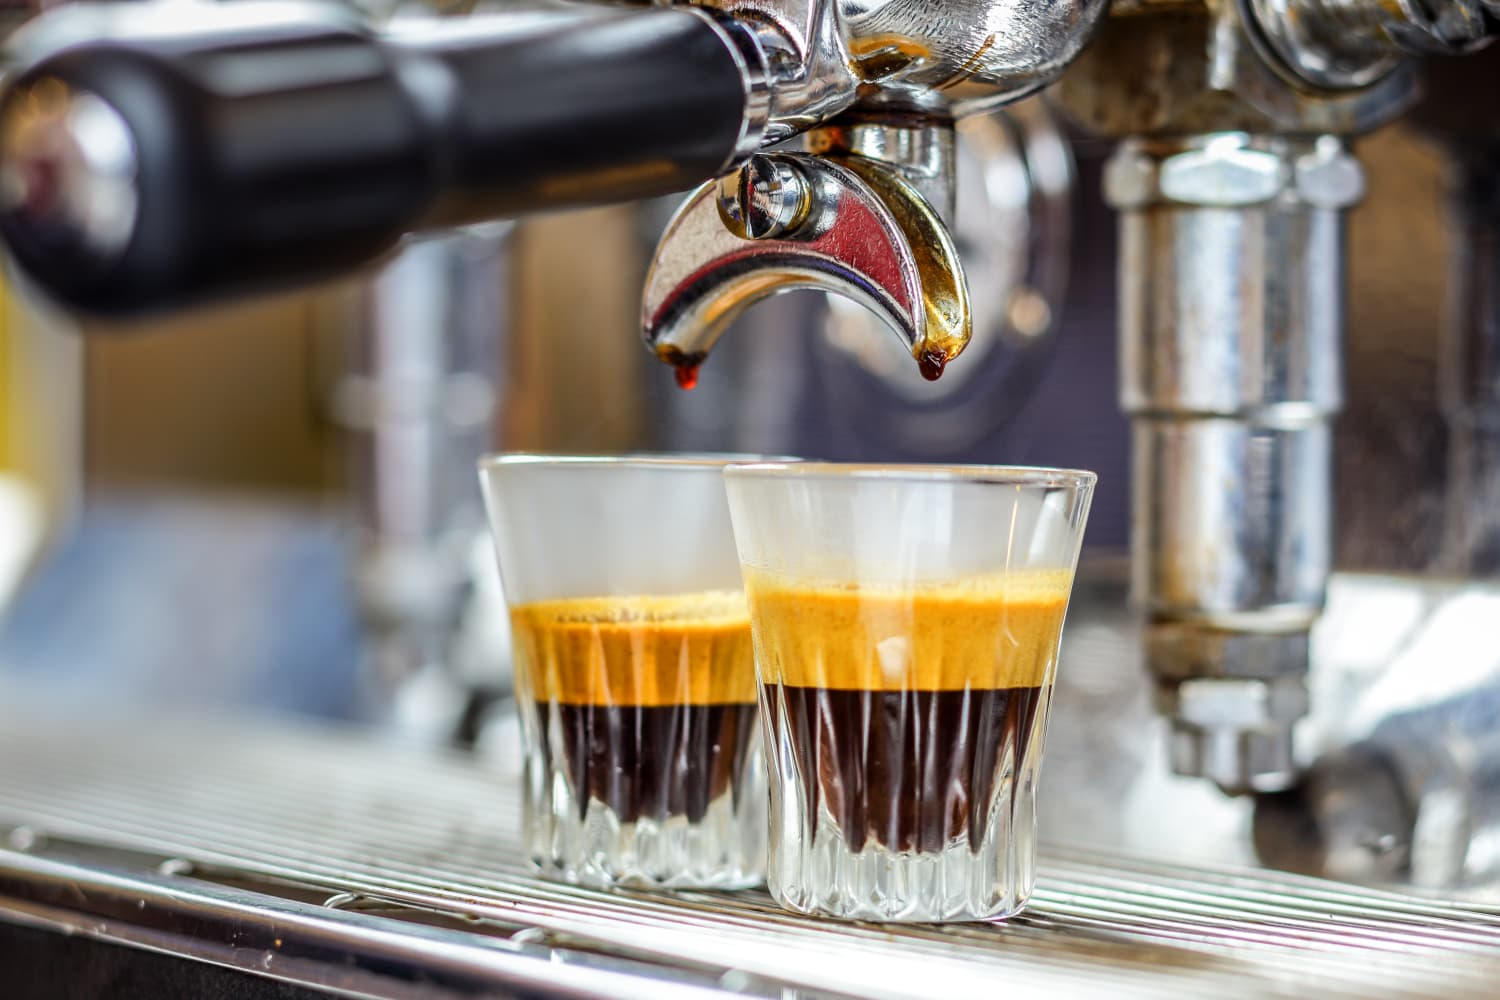 This $125 Espresso Machine Rivals Those Fancy Models That Cost Thousands